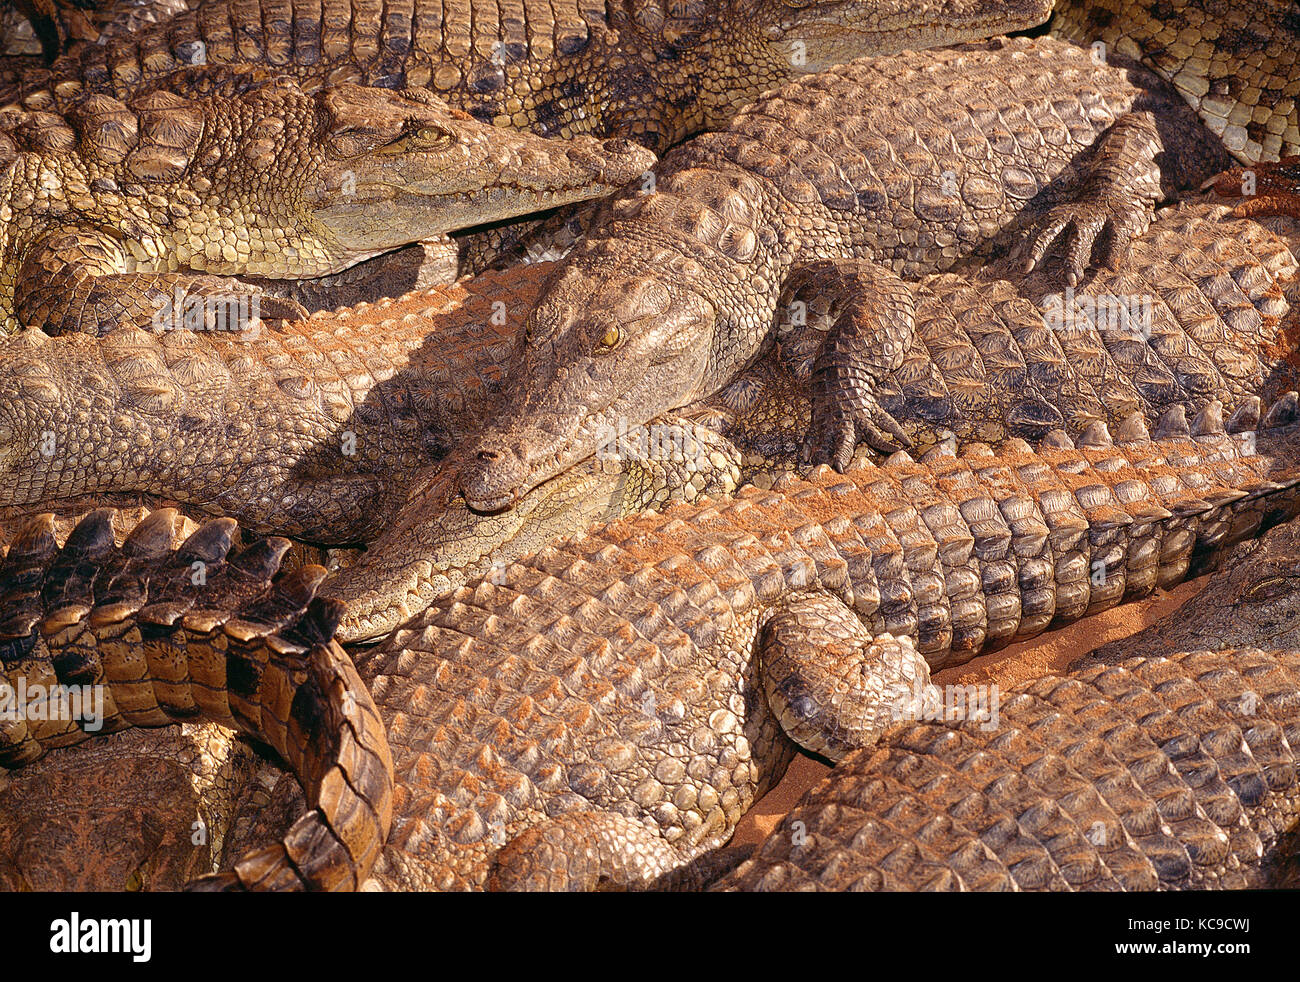 Zimbabwe. Wildlife. Nile Crocodiles farm. - Stock Image